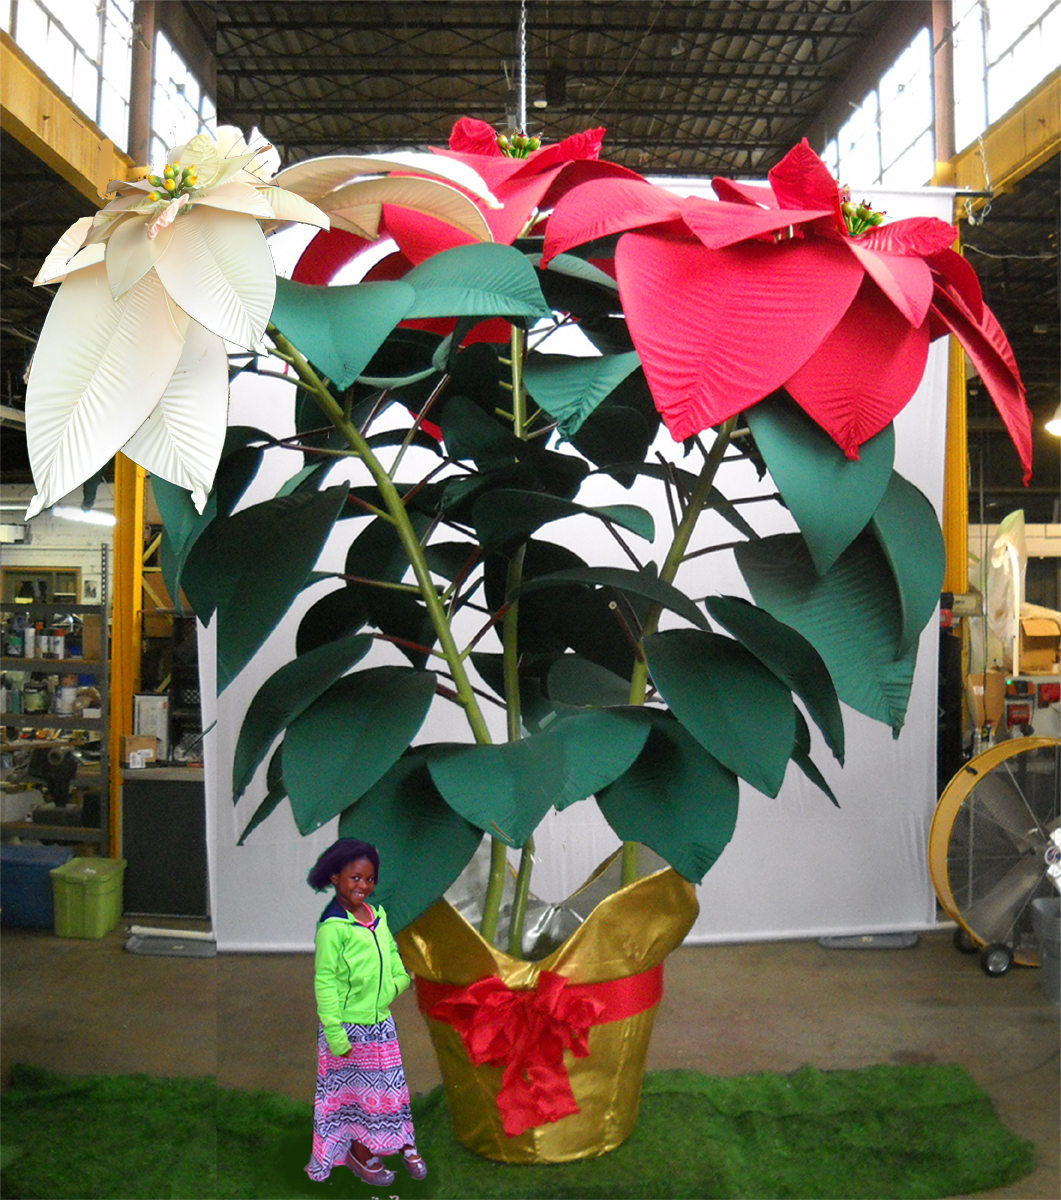 GIANT POINSETTIA 4